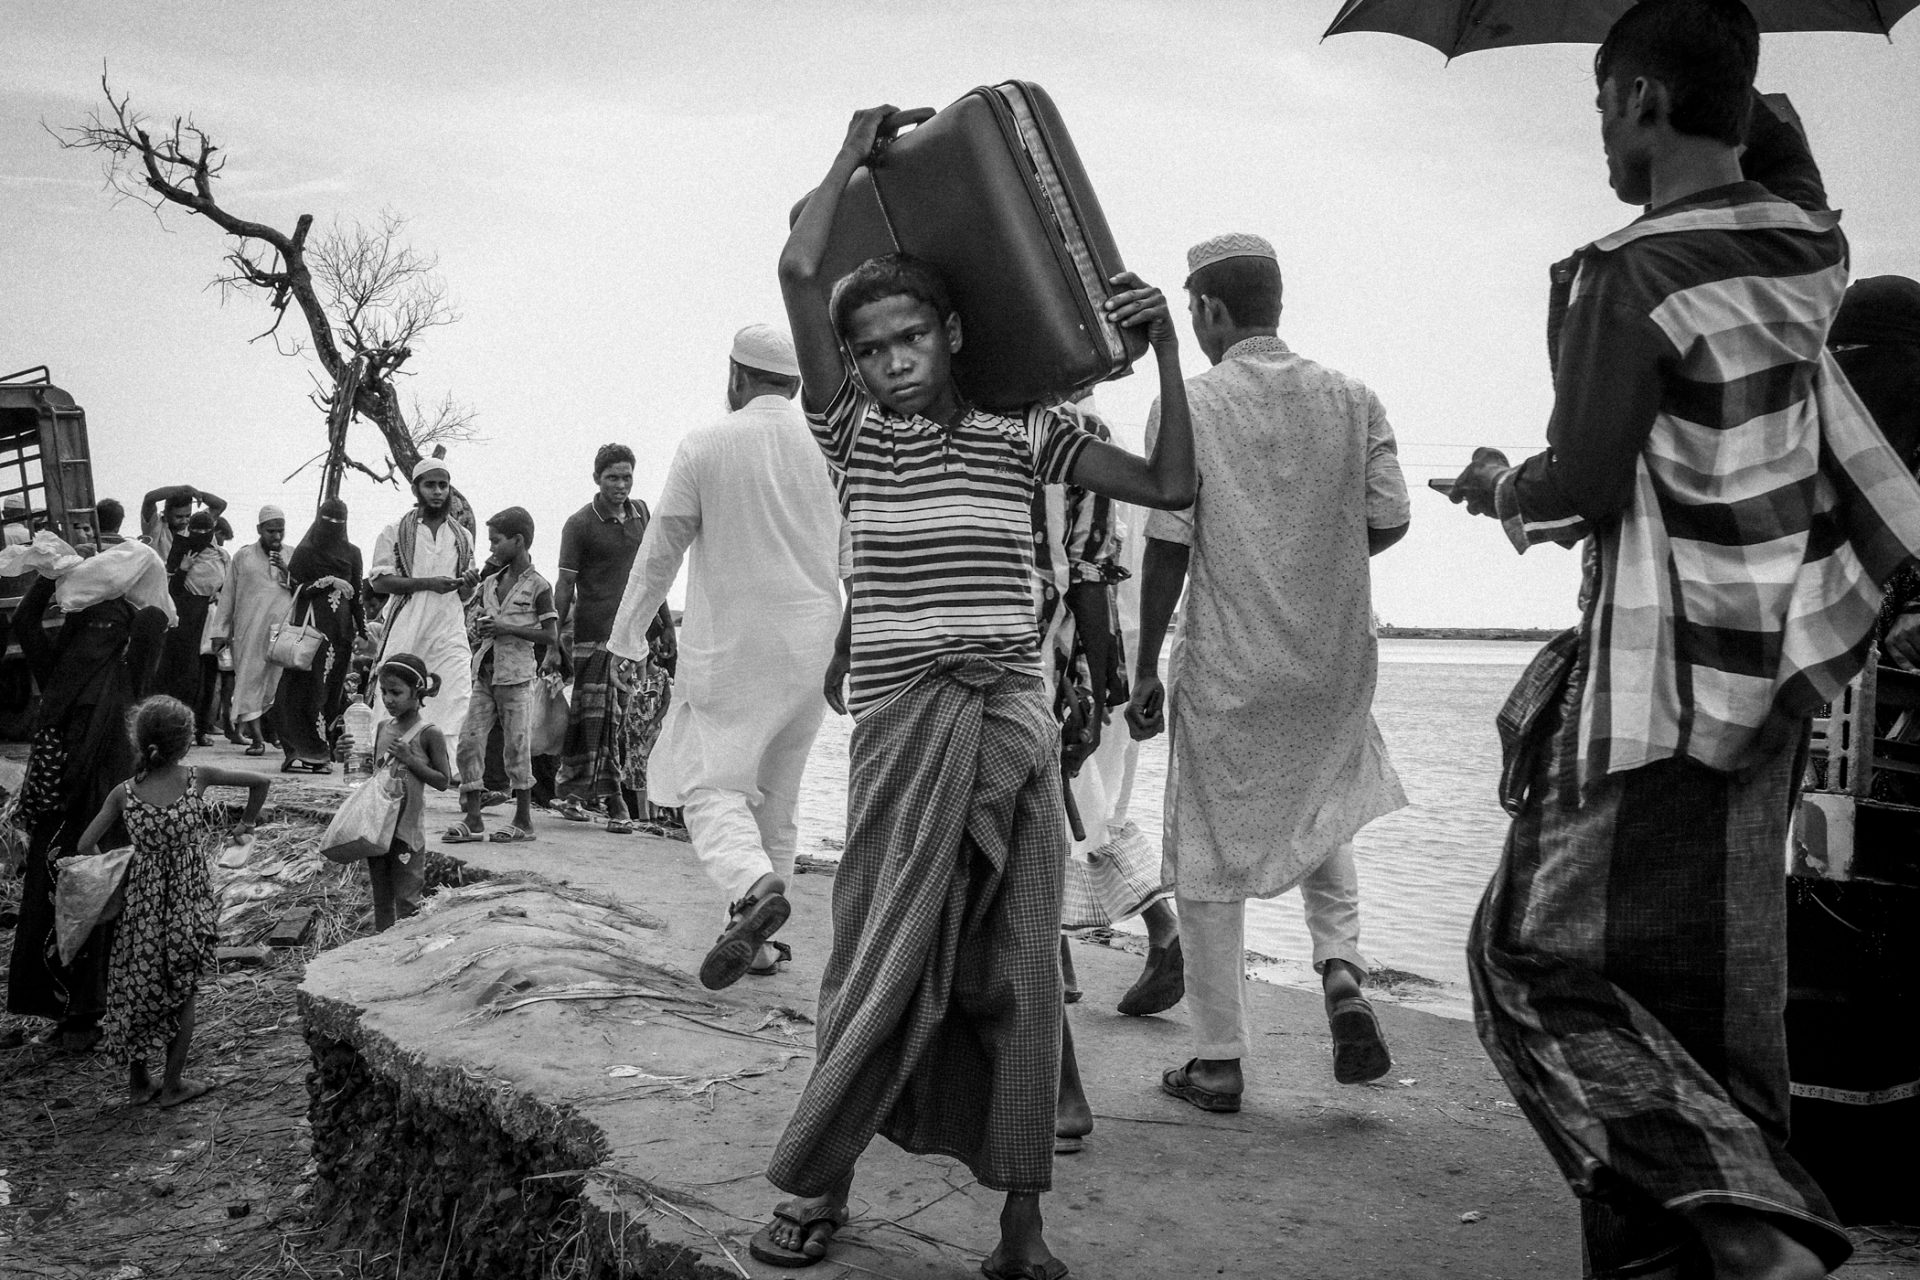 A Rohingya boy carries what belongings he could salvage as he enters Shah Porir Dwip, Bangladesh after fleeing Myanmar do to clearance operations carried out by the Myanmar military.